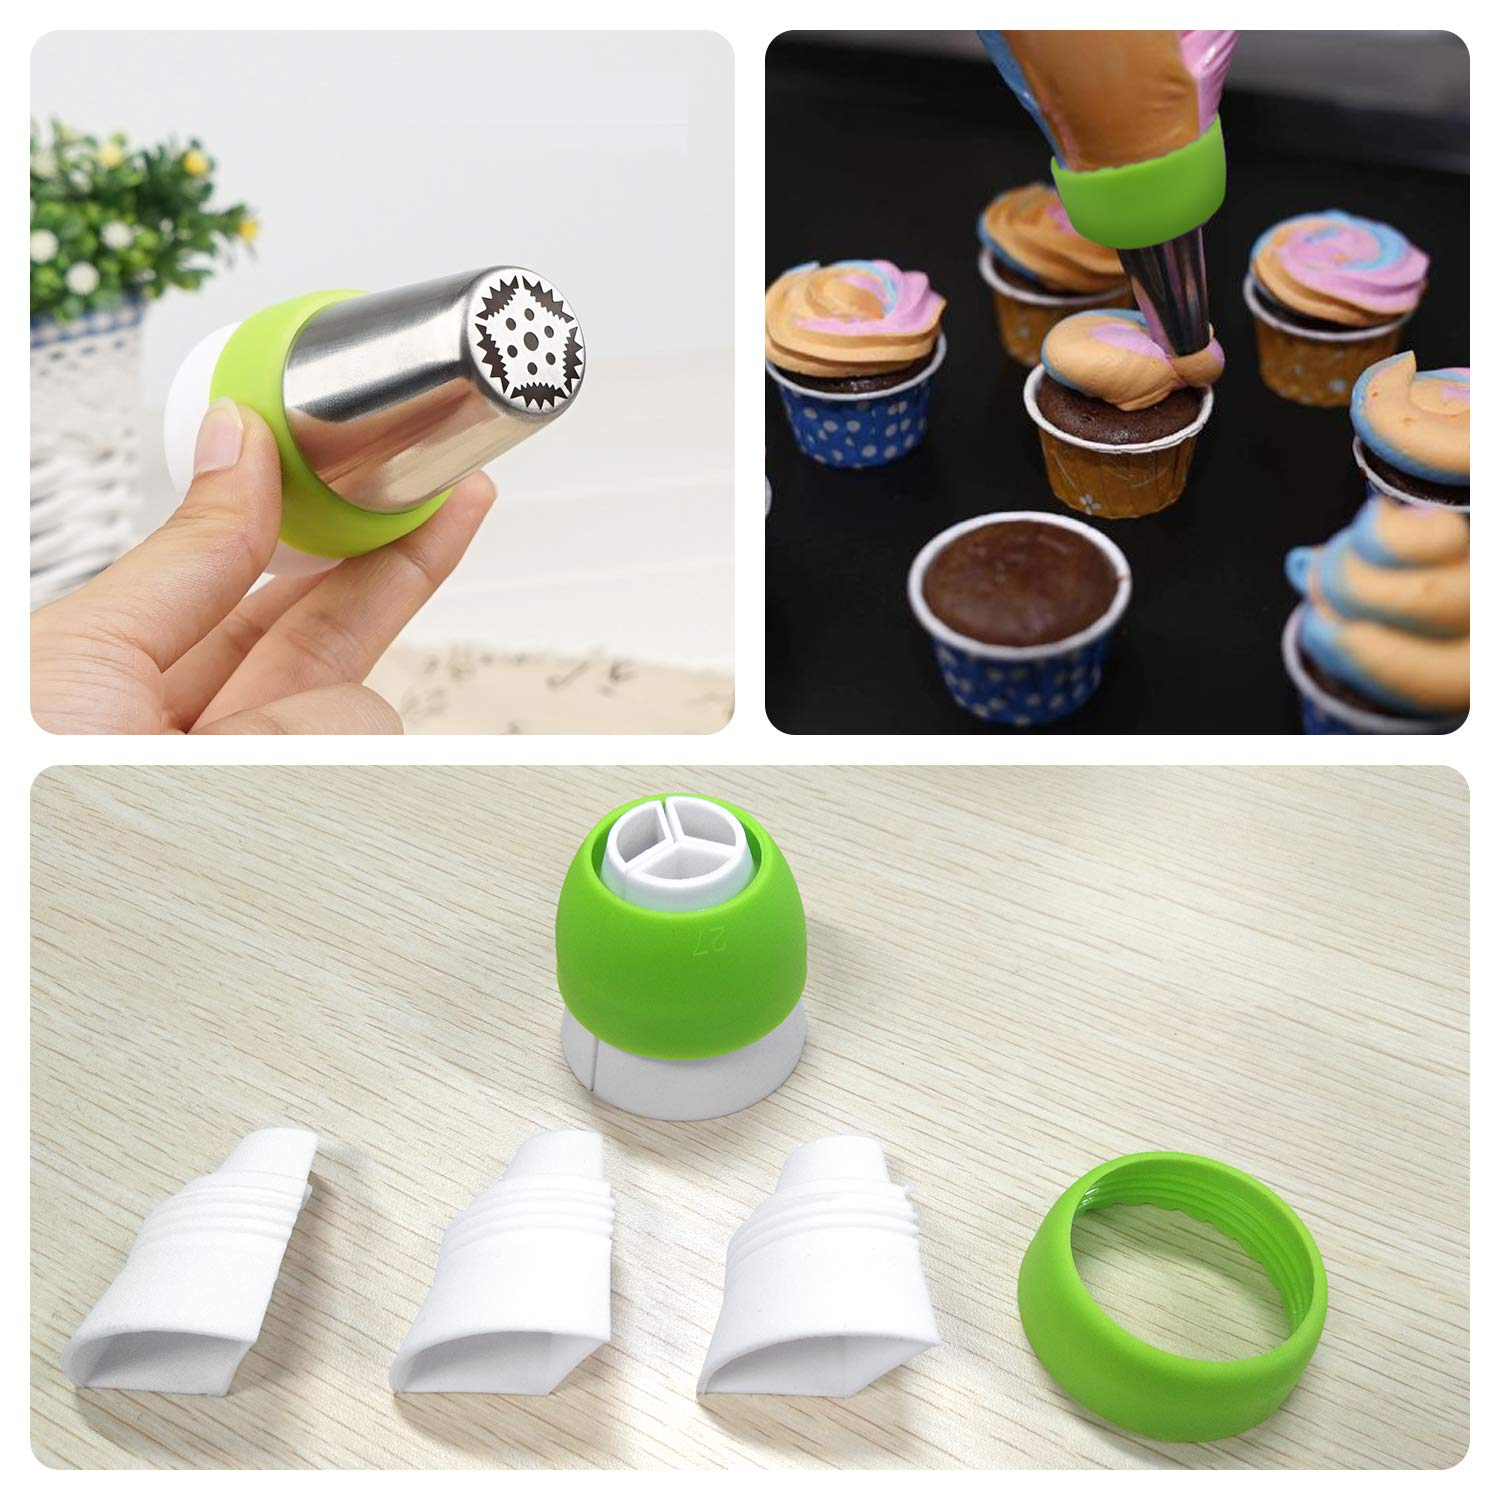 Cake Decorating Supplies 6 Pack Reusable Silicone Pastry Bags Piping Bags Frosting Bags 12 inch 14 inch 16 inch